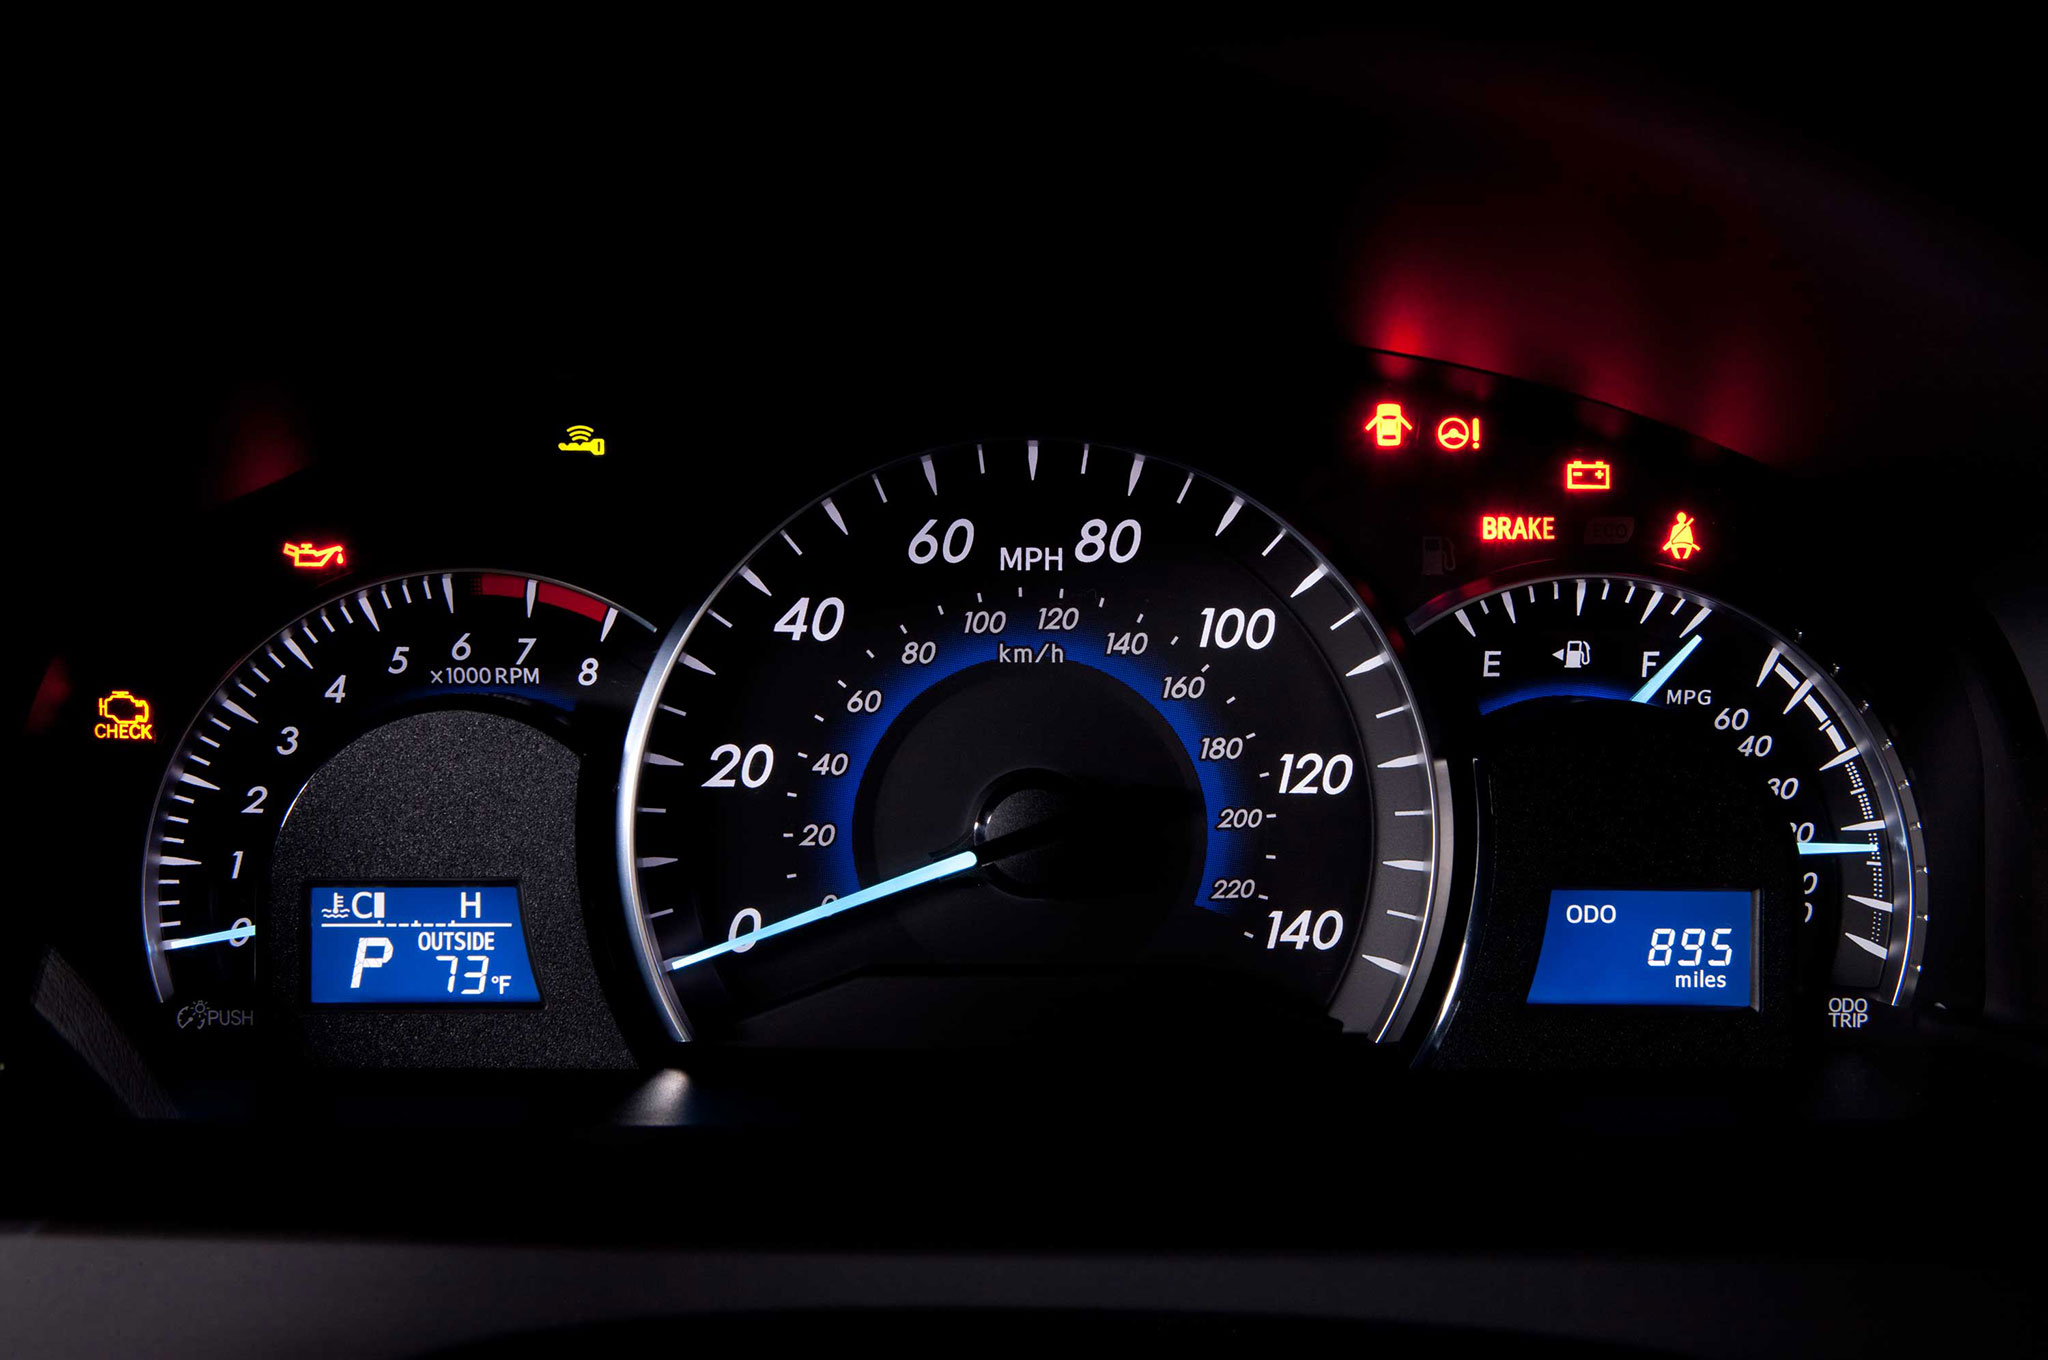 2014-Toyota-Camry-XL-gauges-view Cool toyota Camry 2008 Dashboard Warning Lights Cars Trend